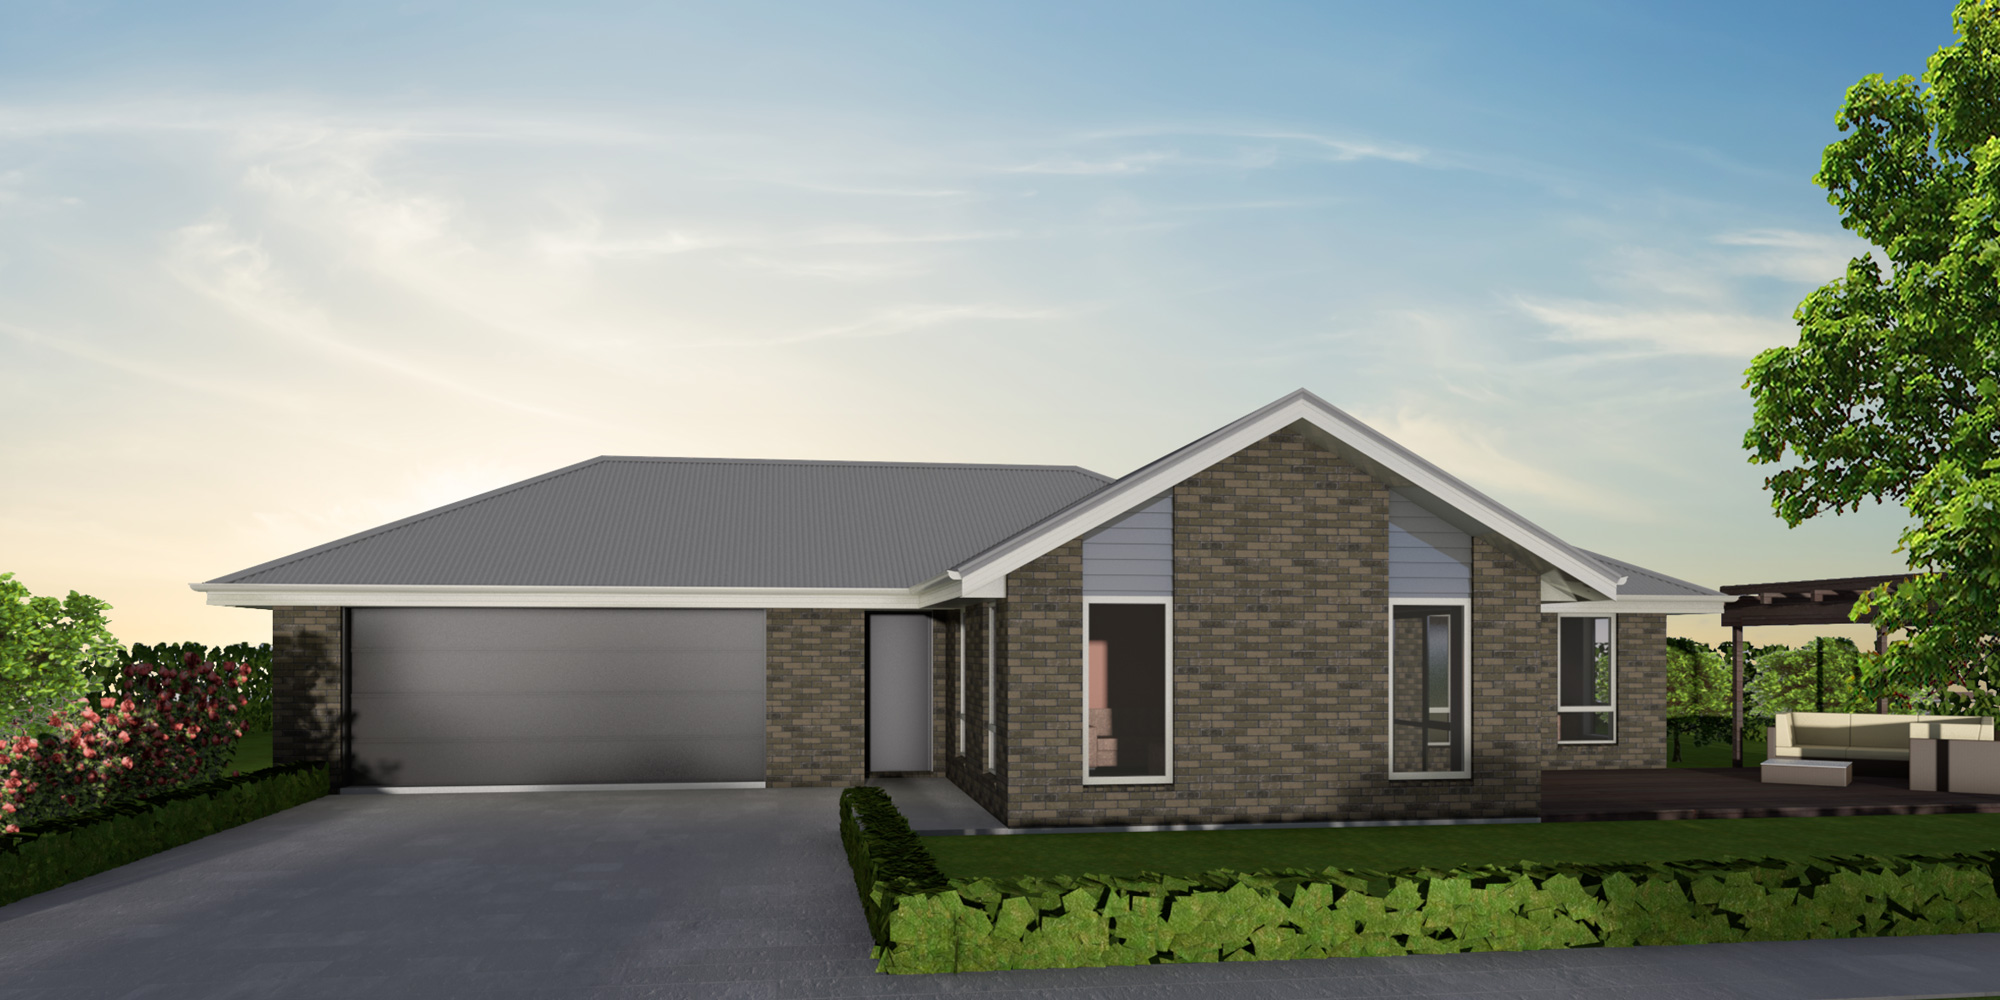 - This roomy home is designed to capture all day sun. With a designer kitchen including walk-in pantry, open plan free-flowing living, four bedrooms and a study nook, all of your family's needs will be met.